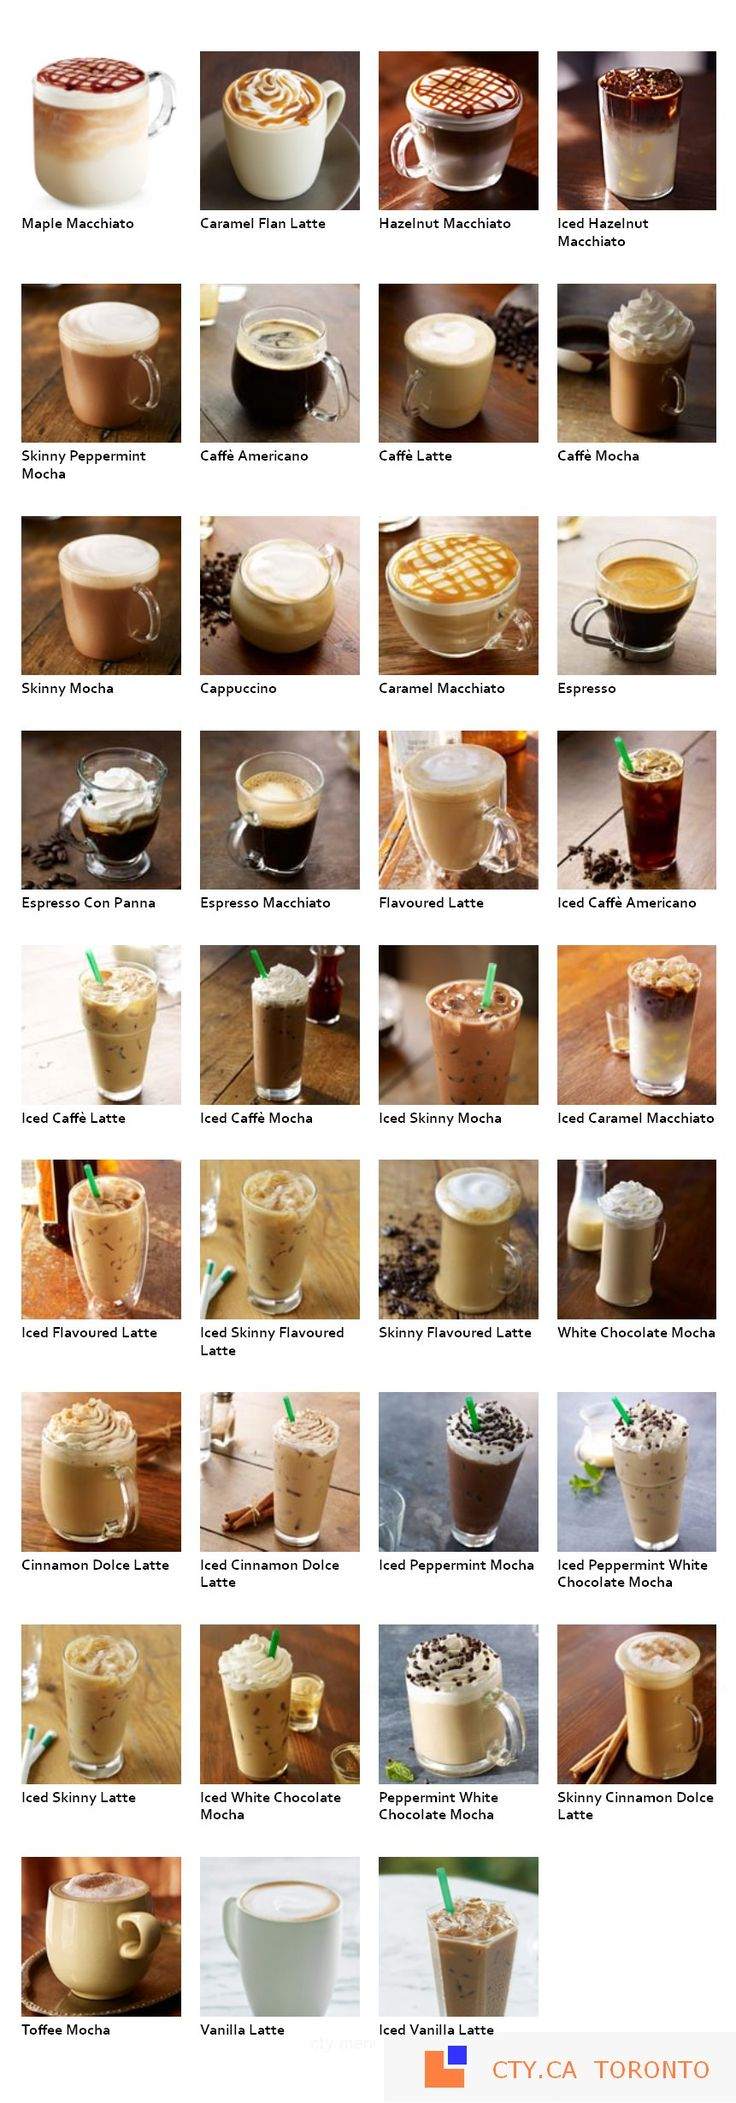 Starbucks Recipes #3